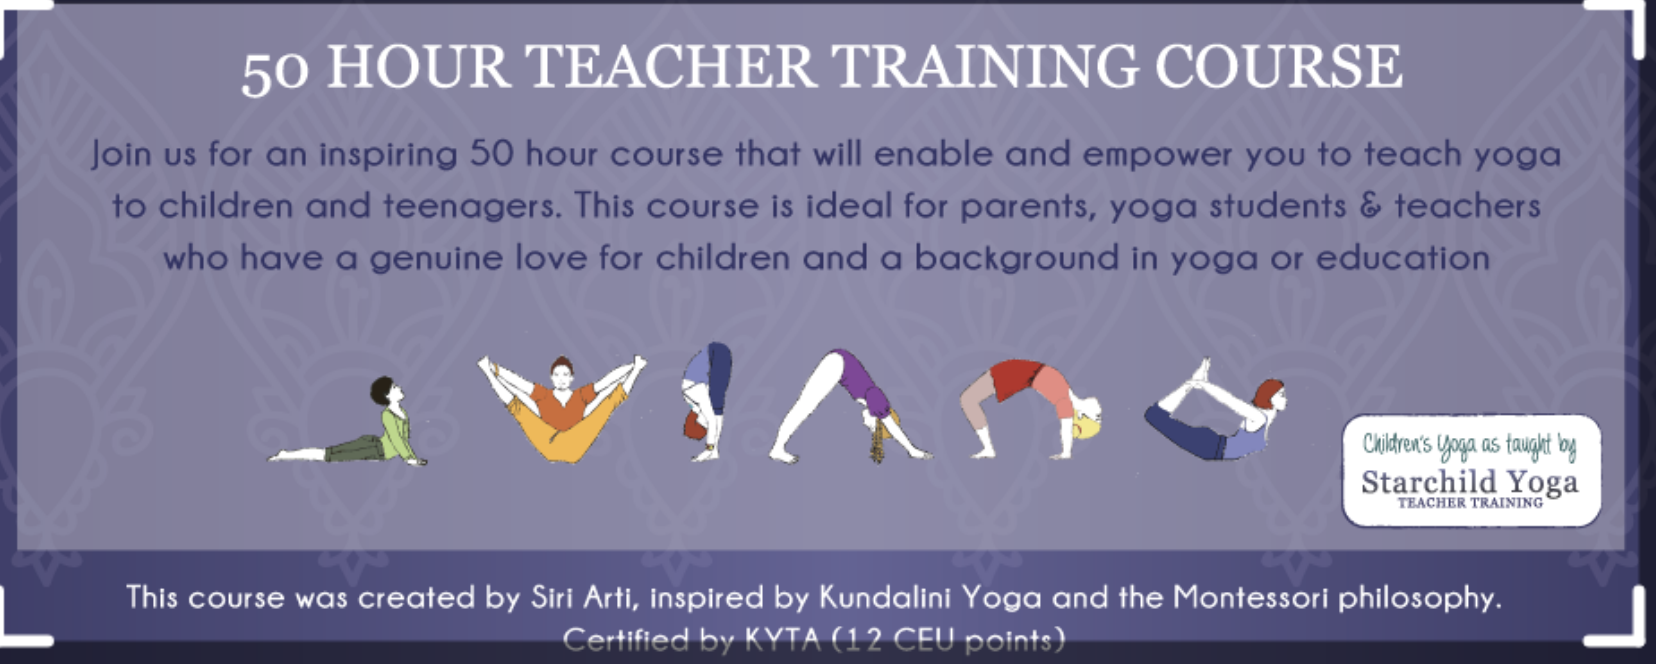 Star Child teacher training at YogaSpace Yorkshire